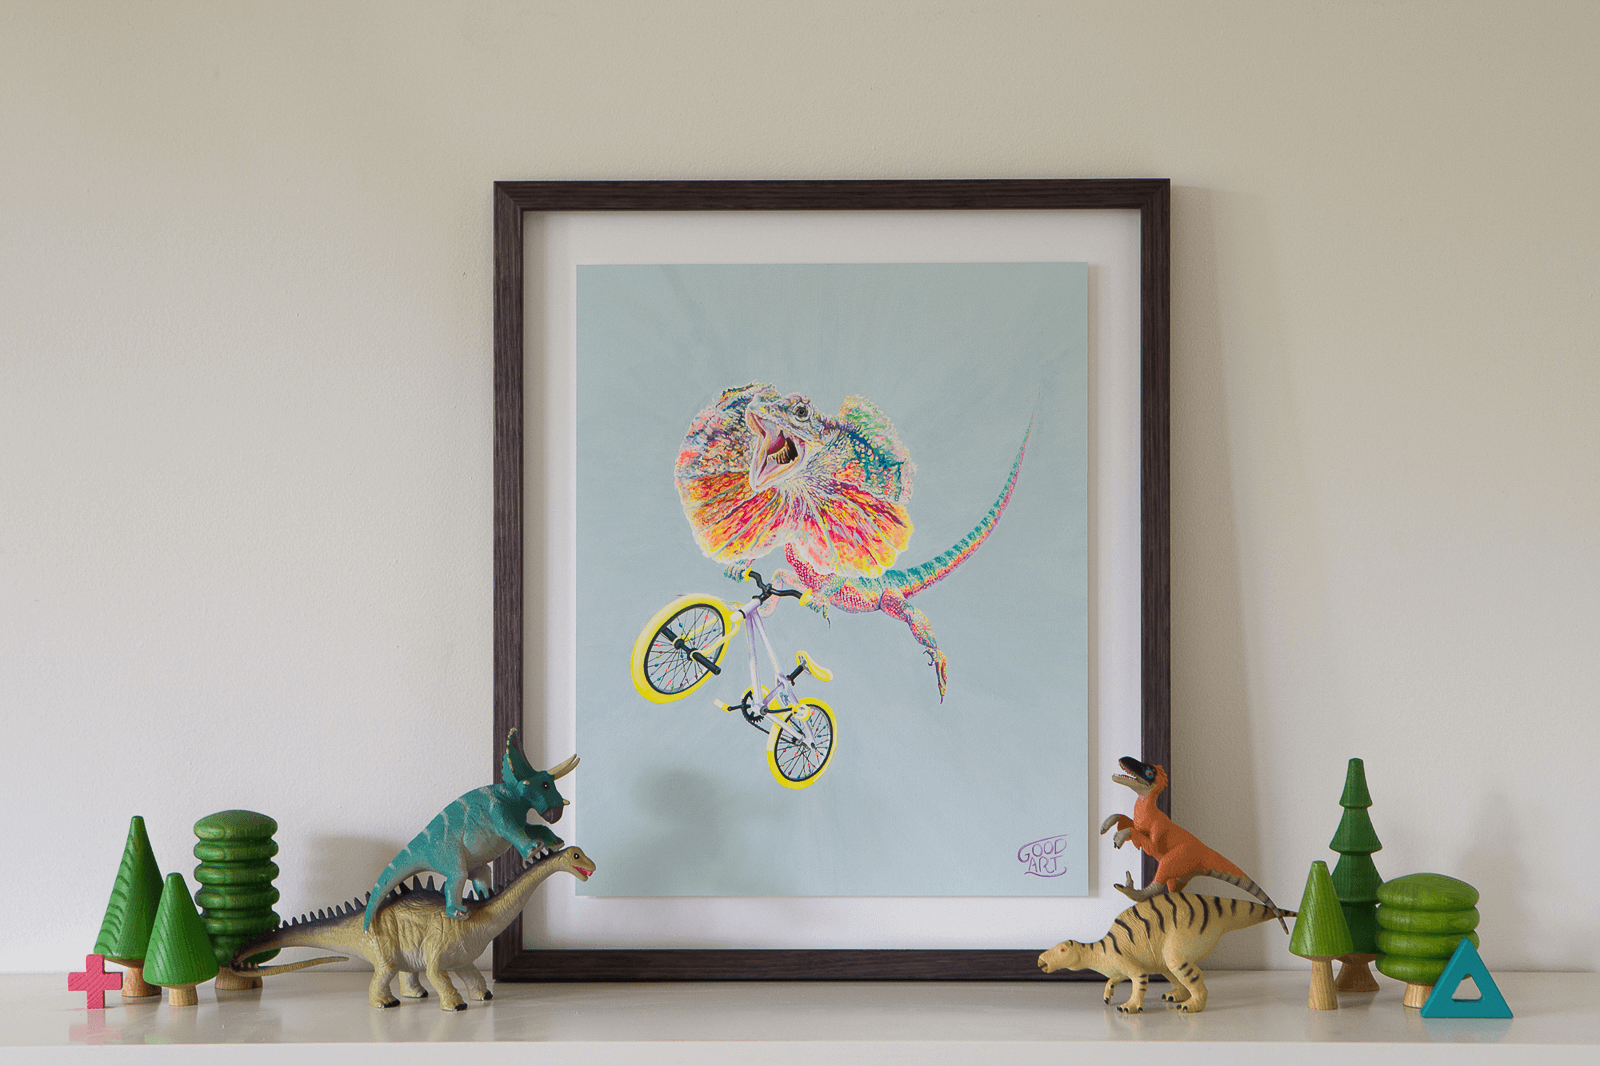 An art print for kids of an Australian frilled neck lizard riding a bmx bike flying over a jump. predominately light blue background. Framed original gouache painting sitting on shelf amongst timber toys and dinosaurs. An artwork for teen boy bedroom painted by artist Jaelle Pedroli.